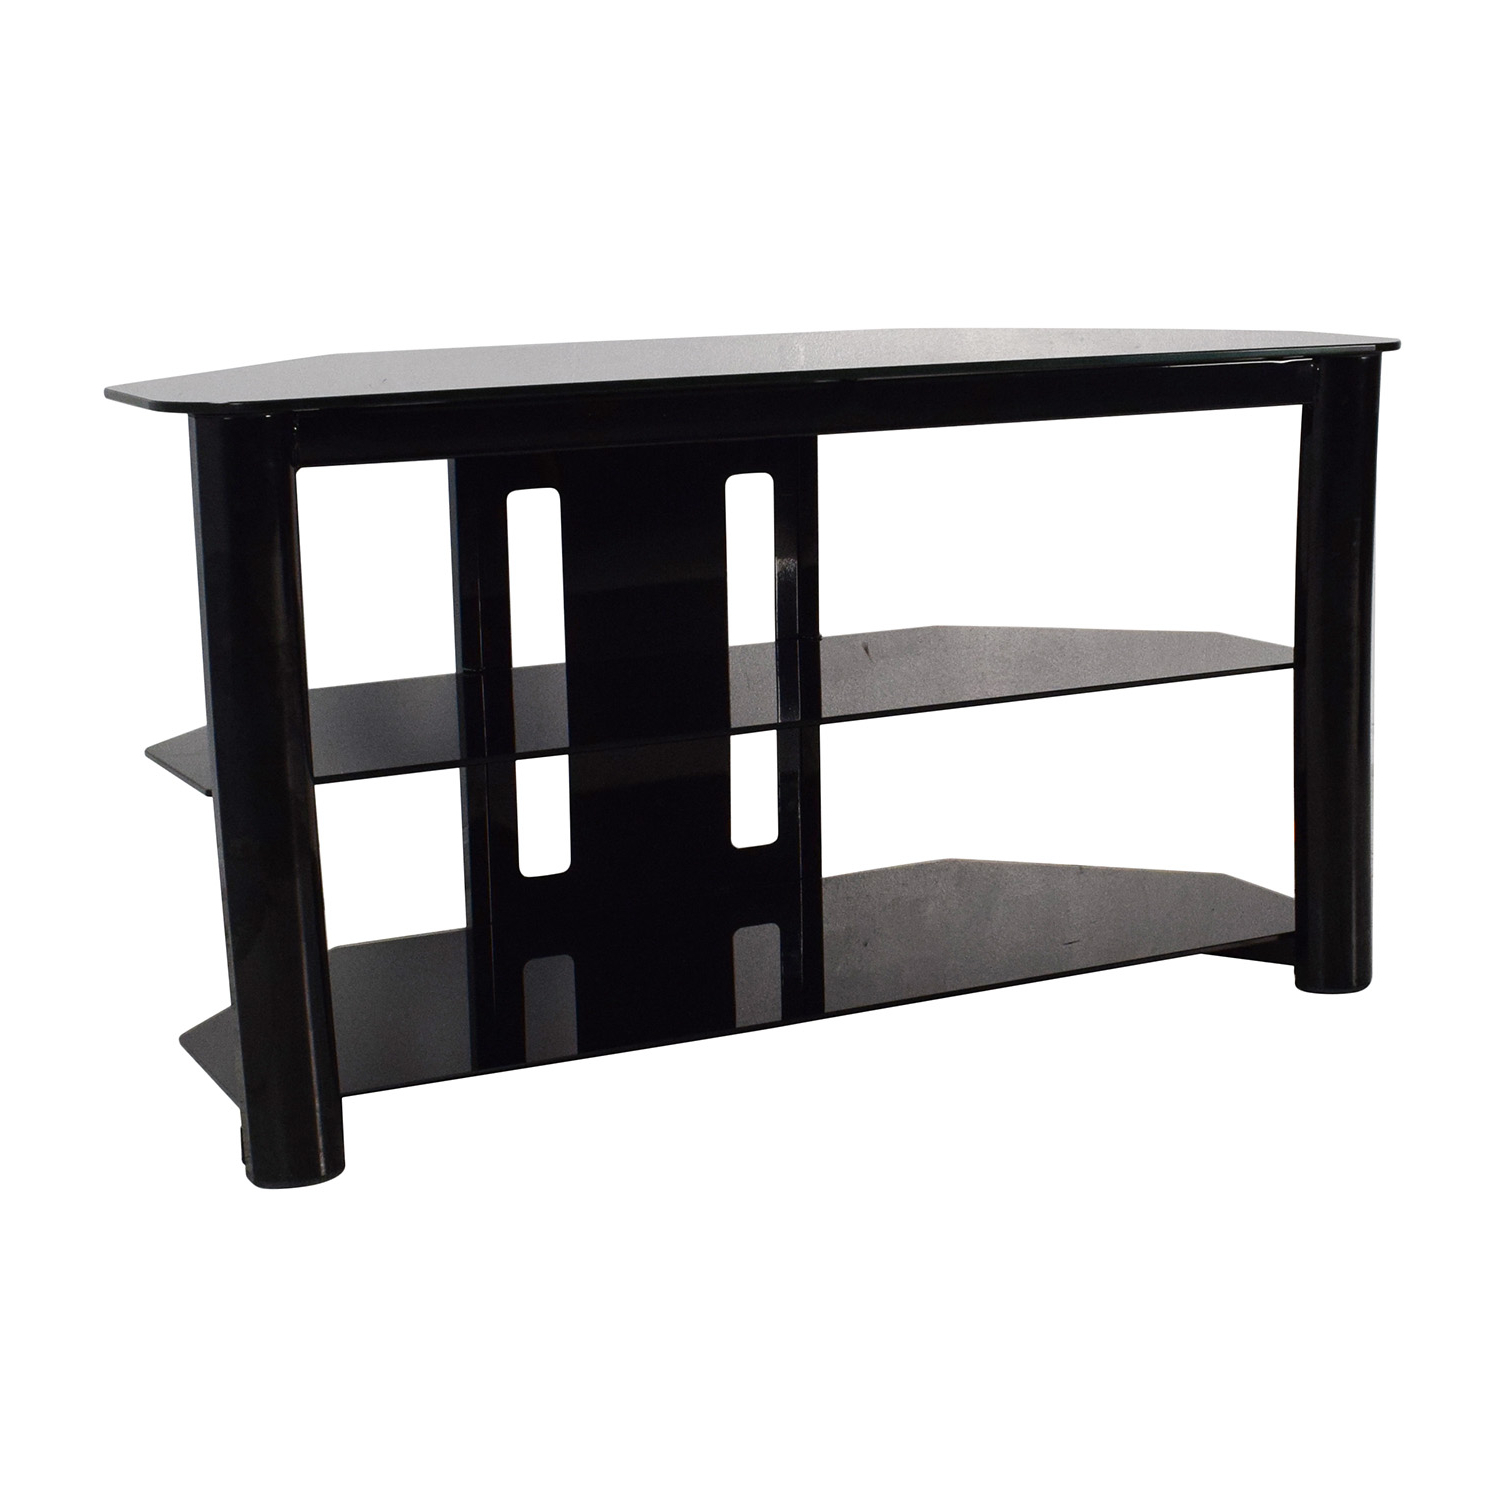 [%61% Off – Best Buy Best Buy Black Glass Tv Stand / Storage Regarding Well Known Swivel Black Glass Tv Stands|Swivel Black Glass Tv Stands Pertaining To Newest 61% Off – Best Buy Best Buy Black Glass Tv Stand / Storage|Recent Swivel Black Glass Tv Stands Pertaining To 61% Off – Best Buy Best Buy Black Glass Tv Stand / Storage|Well Known 61% Off – Best Buy Best Buy Black Glass Tv Stand / Storage For Swivel Black Glass Tv Stands%] (View 1 of 20)